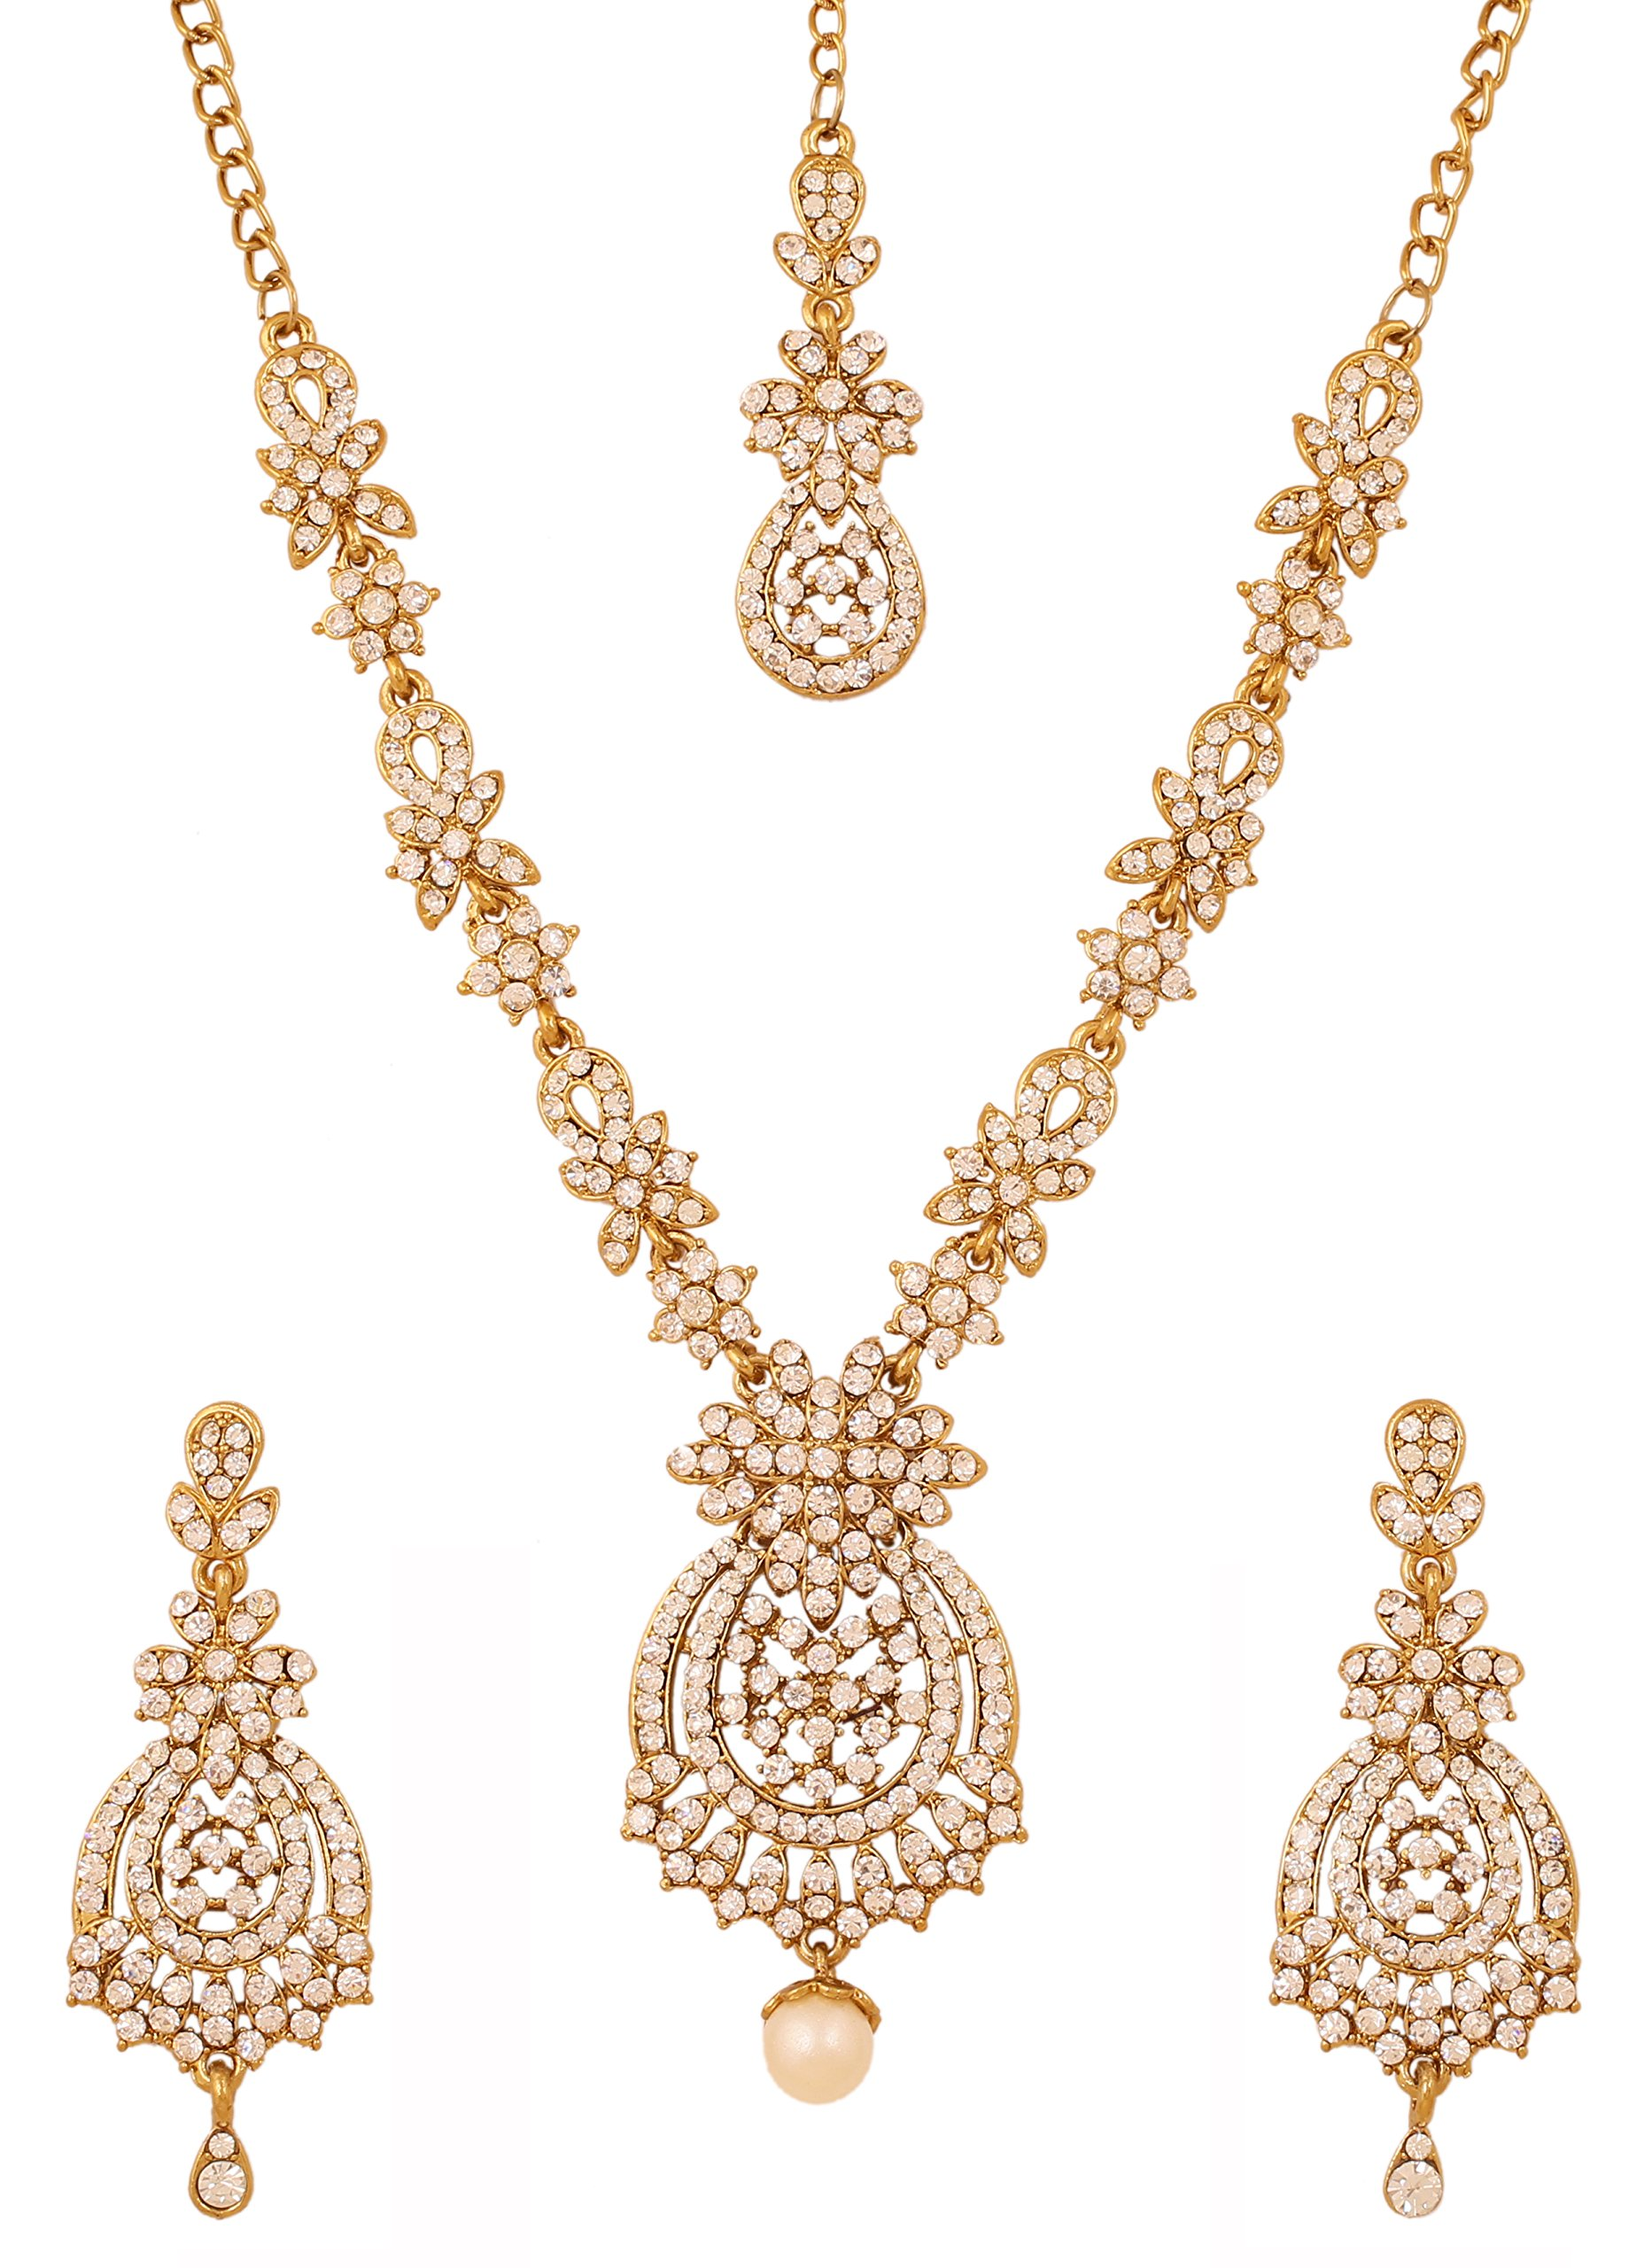 Touchstone Indian bollywood rhinestones bridal jewelry necklace set in antique gold tone for women by Touchstone